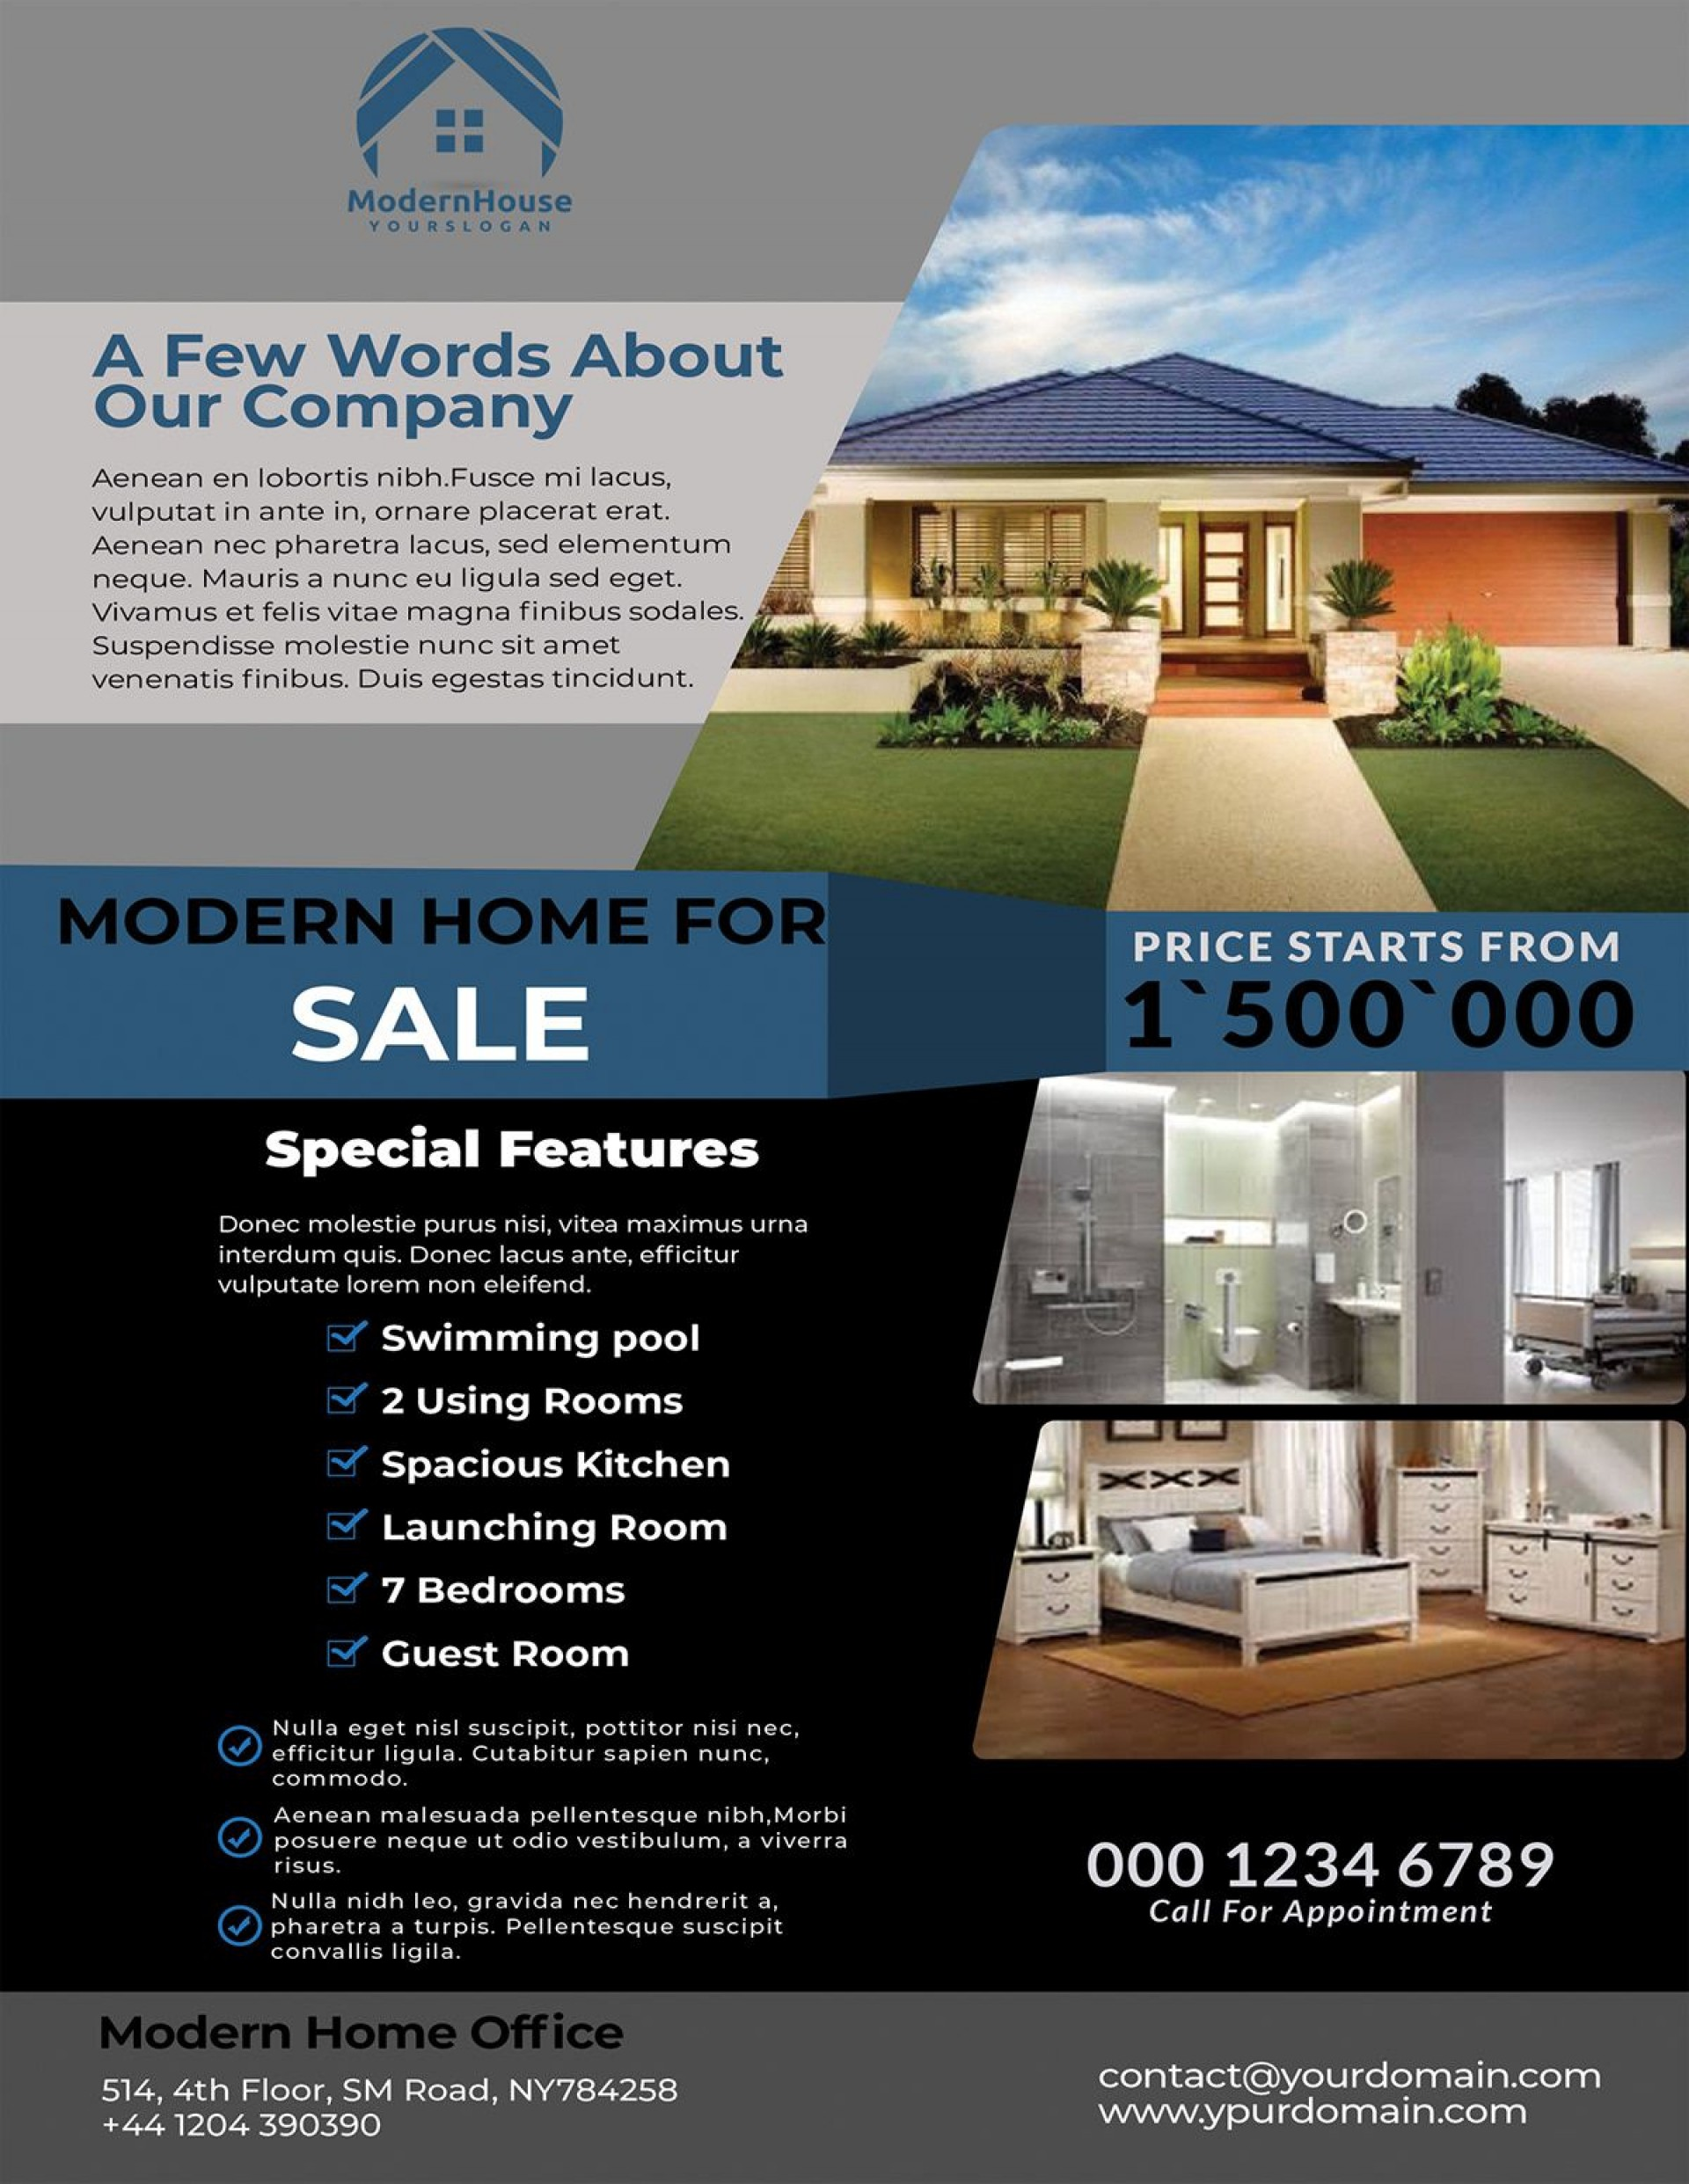 000 Fascinating House For Sale Flyer Template Photo  Free Real Estate Example By Owner1920